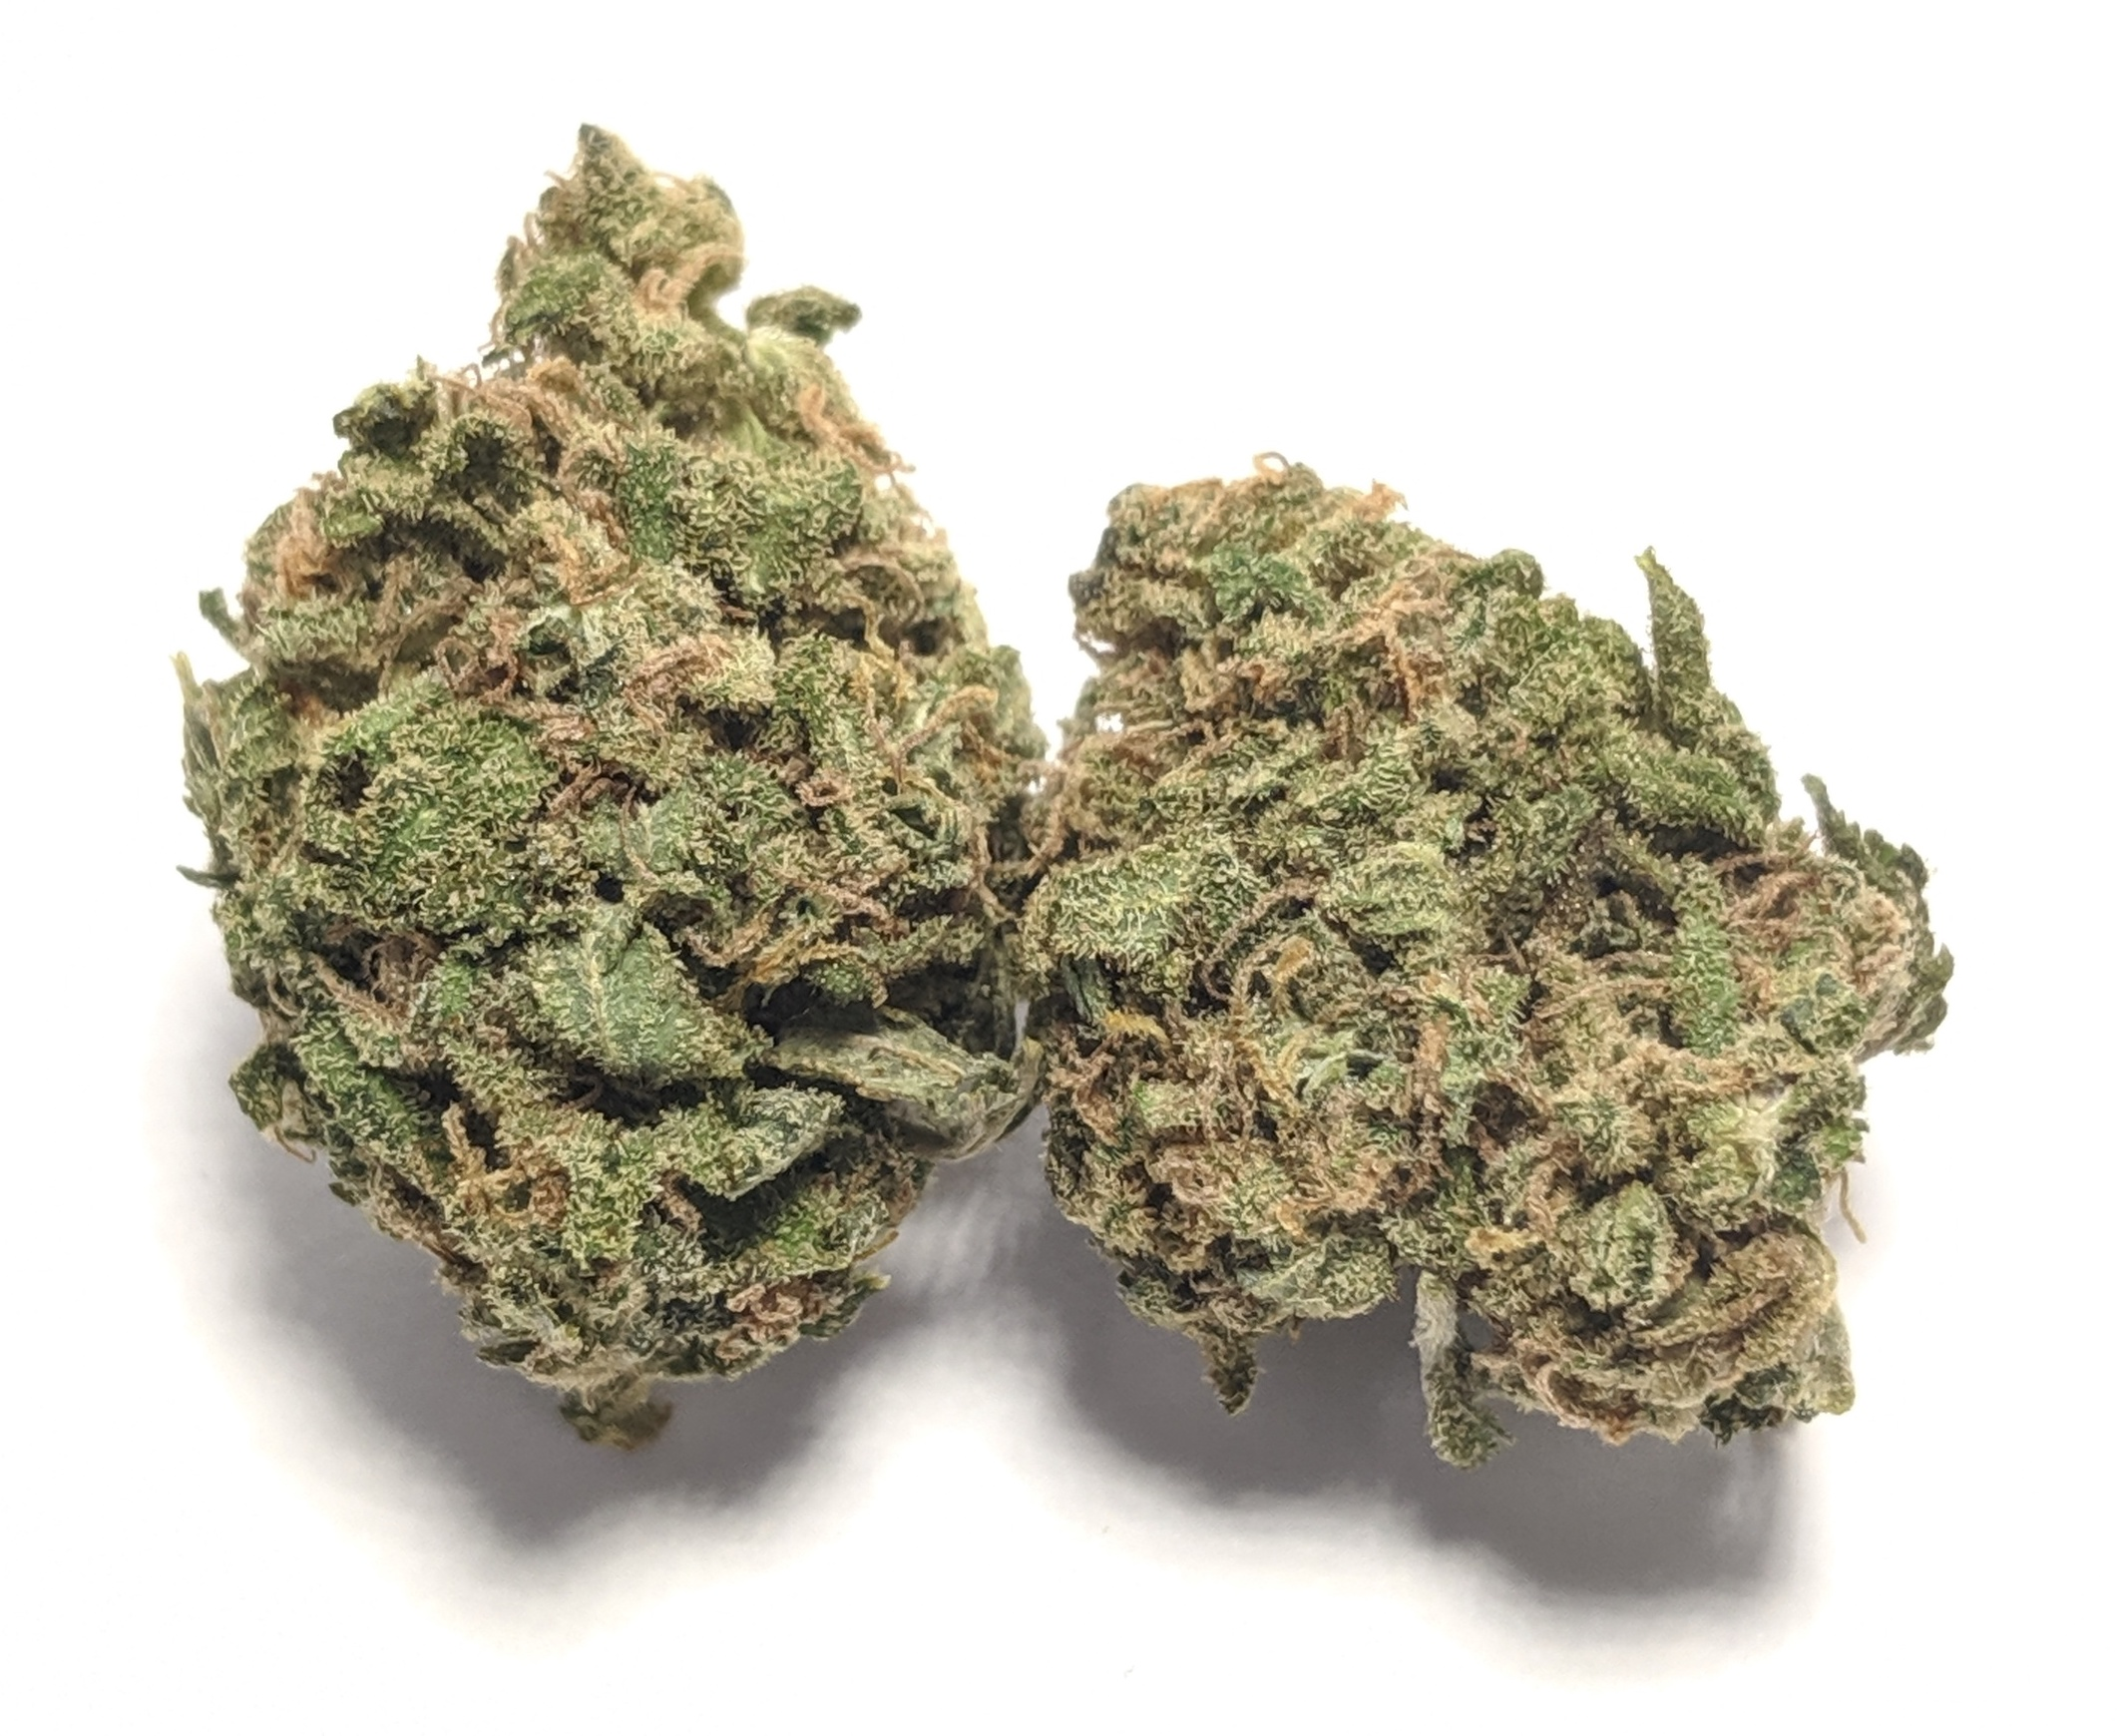 Blueberry Muffin- Hybrid    1/4- $60 1/2-$100 OZ-$180   Produced by Humboldt Seed Co., Blueberry Muffinsometimes called Blueberry Muffinsis an indica-dominant cross of Blueberry and Purple Panty Dropper. Revered for its uniform bud structure and purple-tinted flowers, this cross smells like a tray of fresh baked muffins. Its berry sweetness is softened by a smooth, creamy finish and makes for a tasty joint.